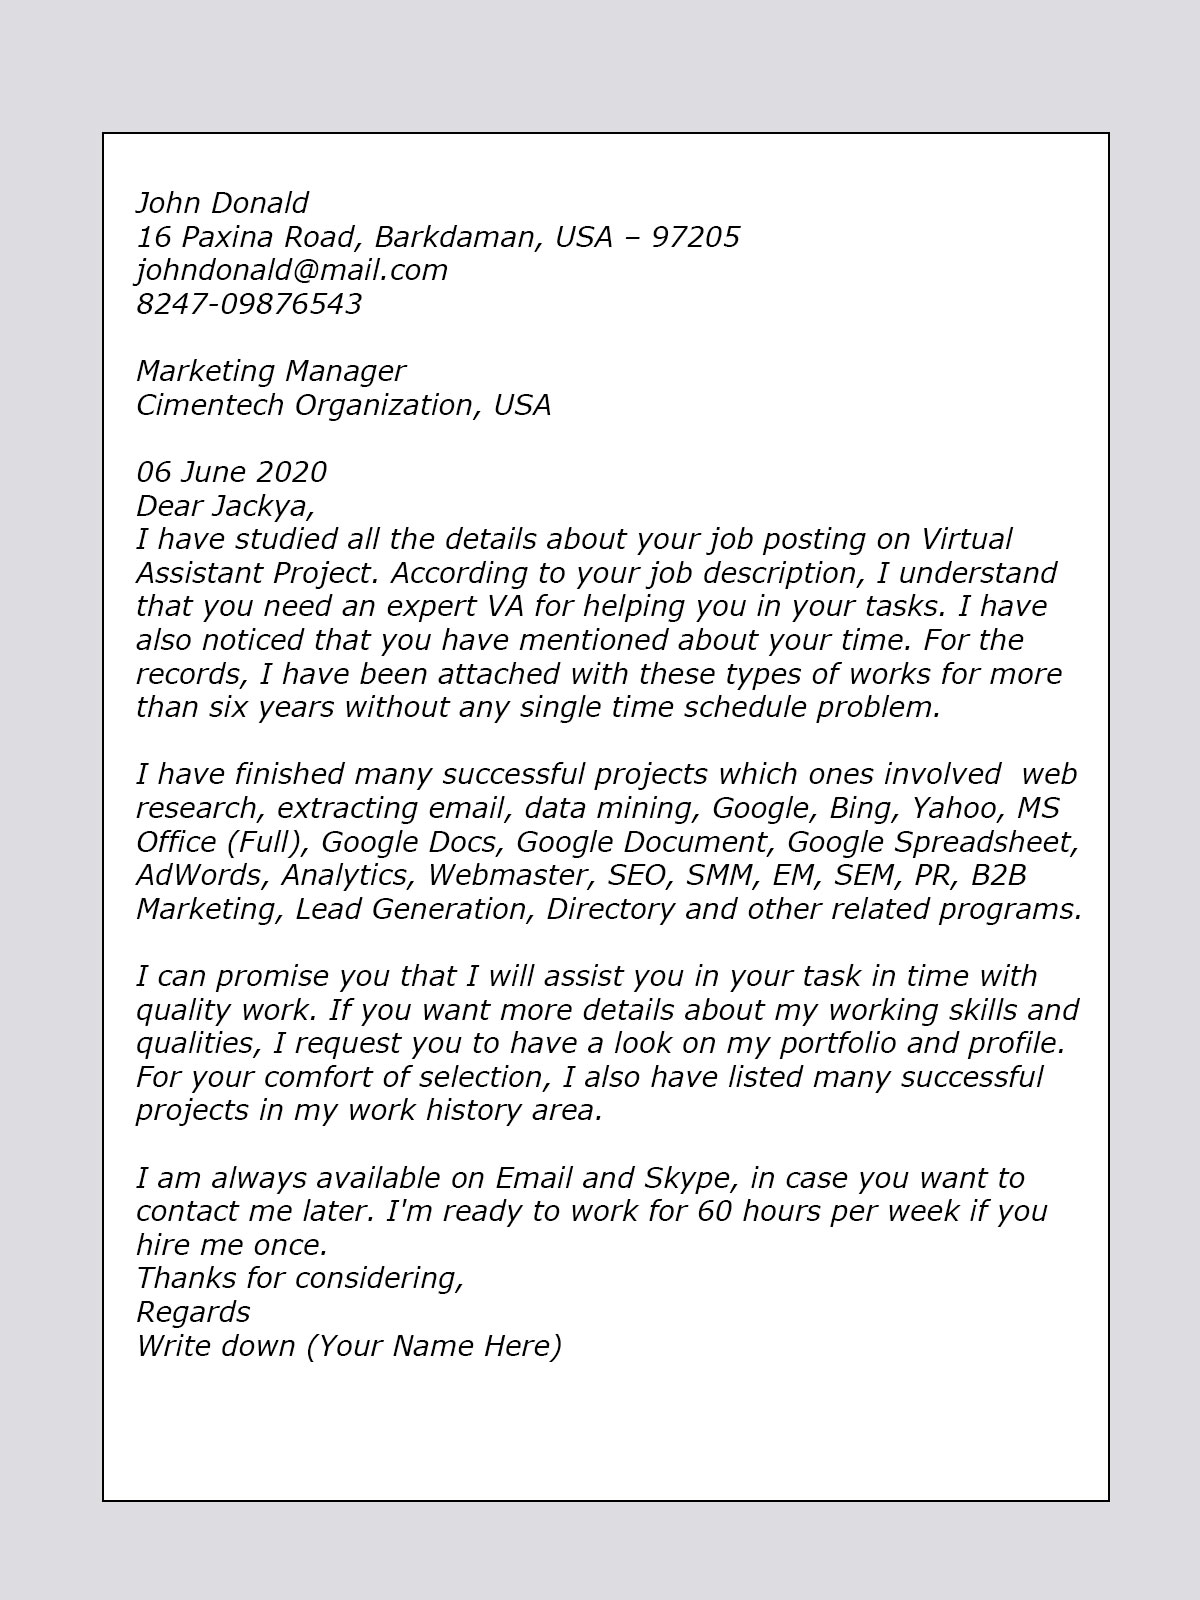 Virtual Assistant Resume Cover Letter List Of Accomplishments Ideas